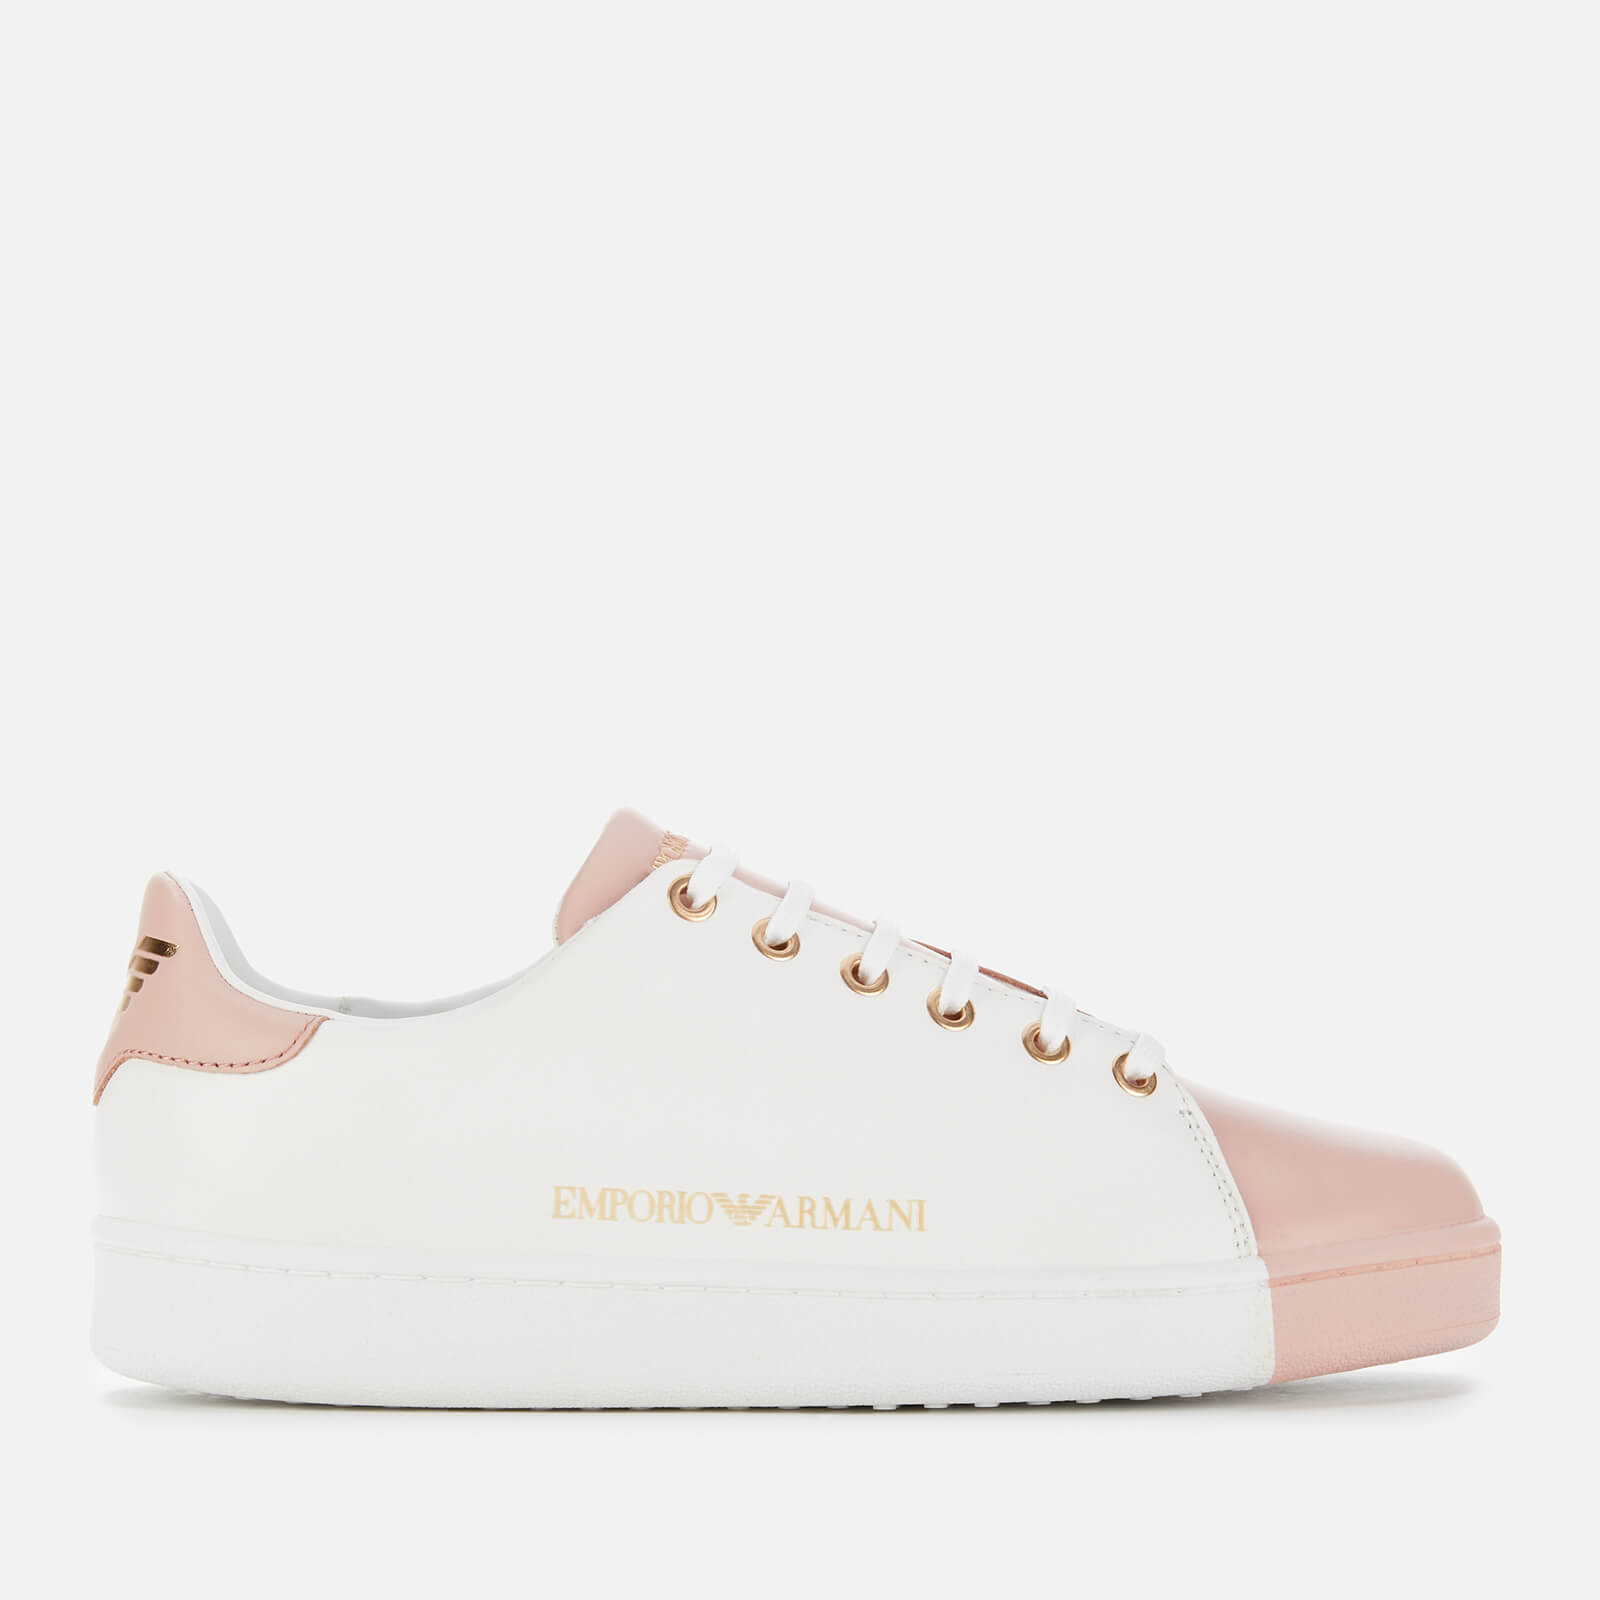 Emporio Armani Women's Serena Leather Low Top Trainers - White/Rose